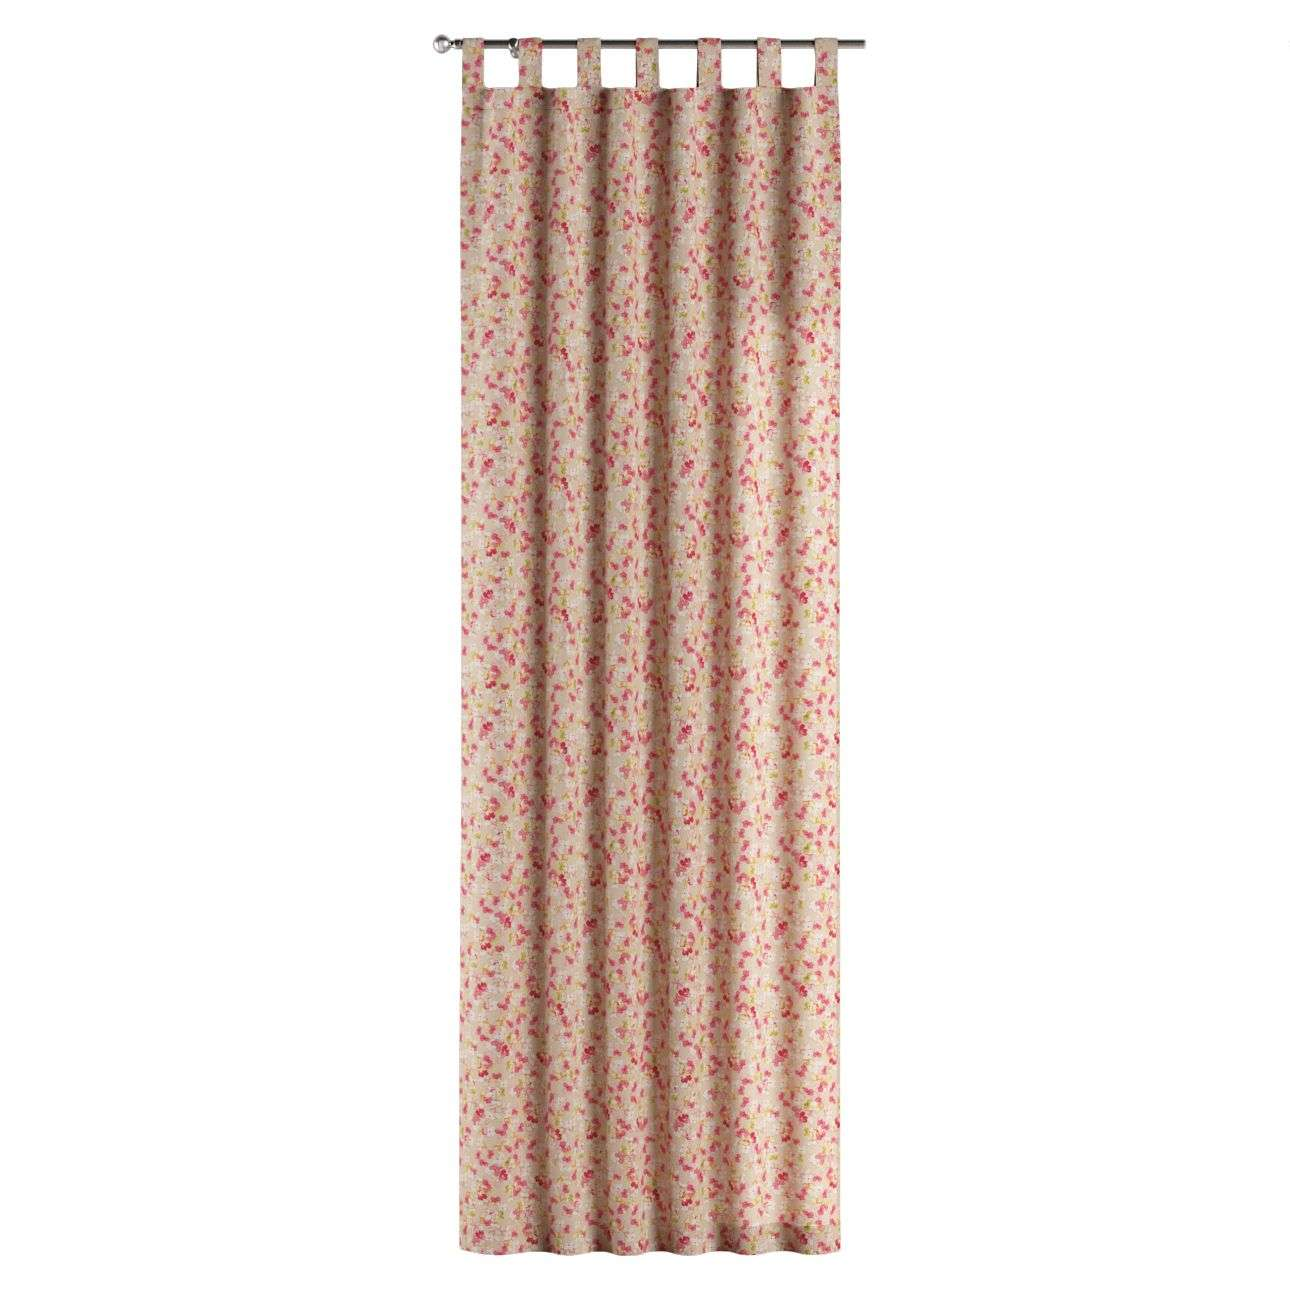 Tab top curtains in collection Londres, fabric: 140-47